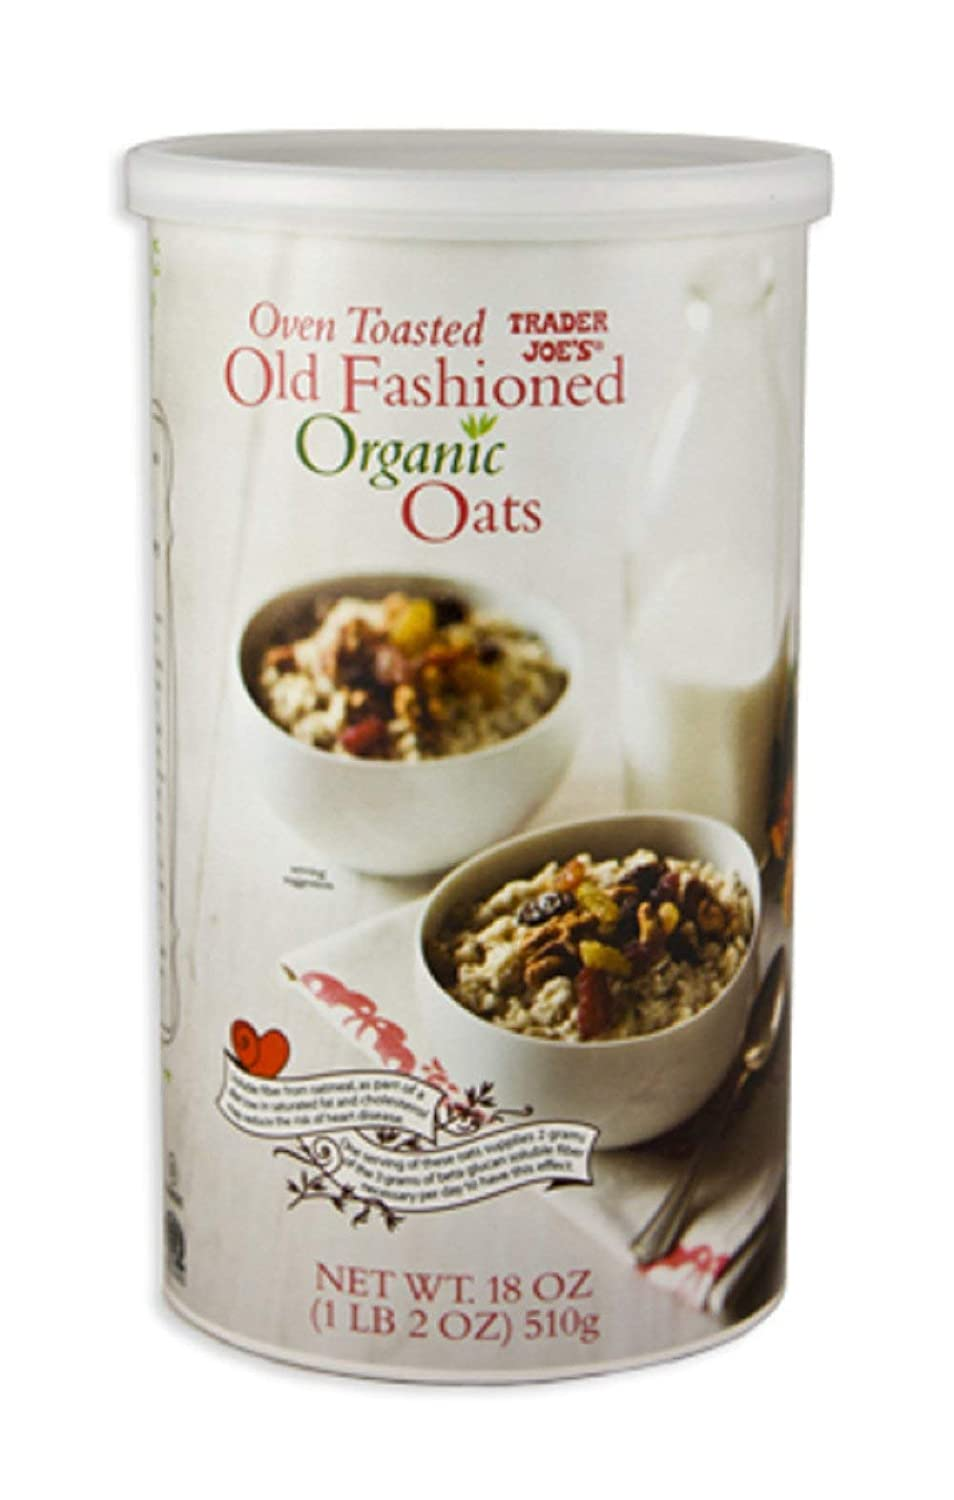 Trader Joe's Oven Toasted Old Fashioned Organic Oats